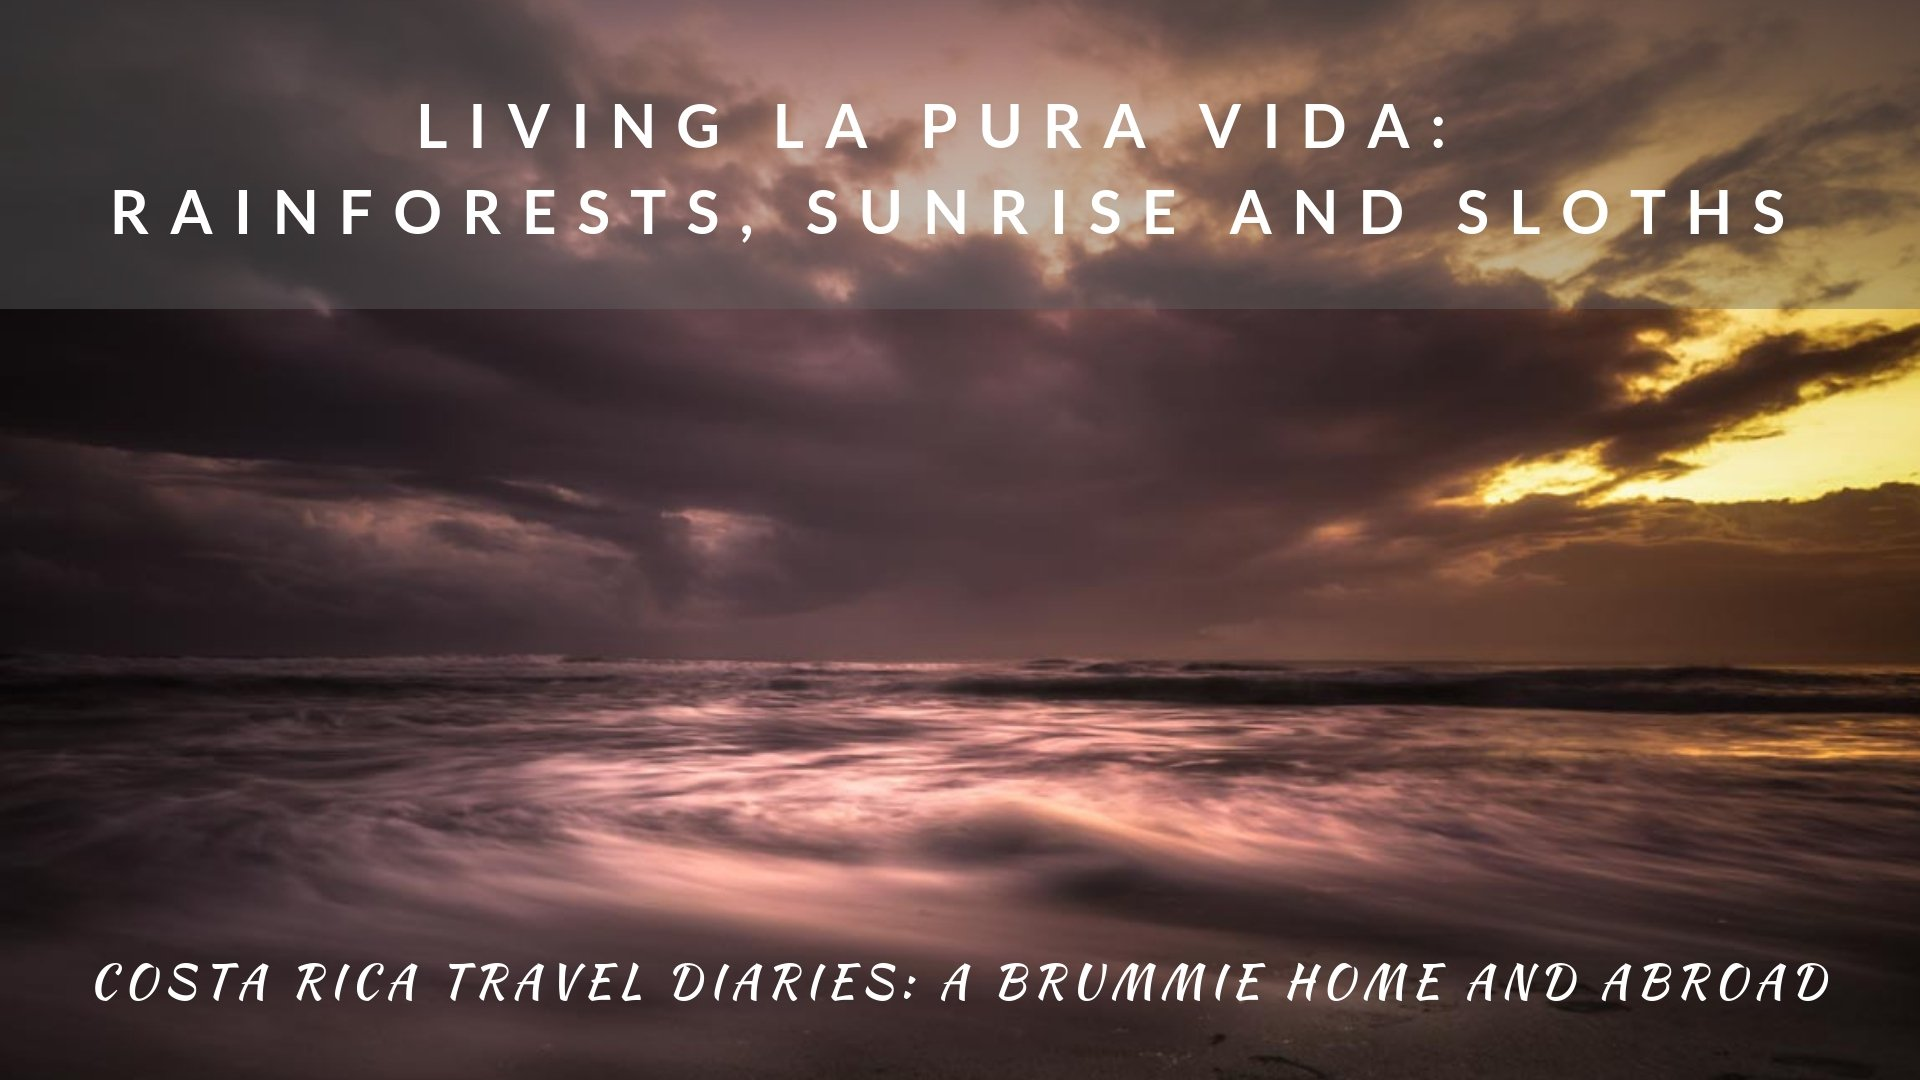 A Brummie Home and Abroad Costa Rica Travel Diaries Living La Pura Vida: Rainforests, Sunrise and Sloths